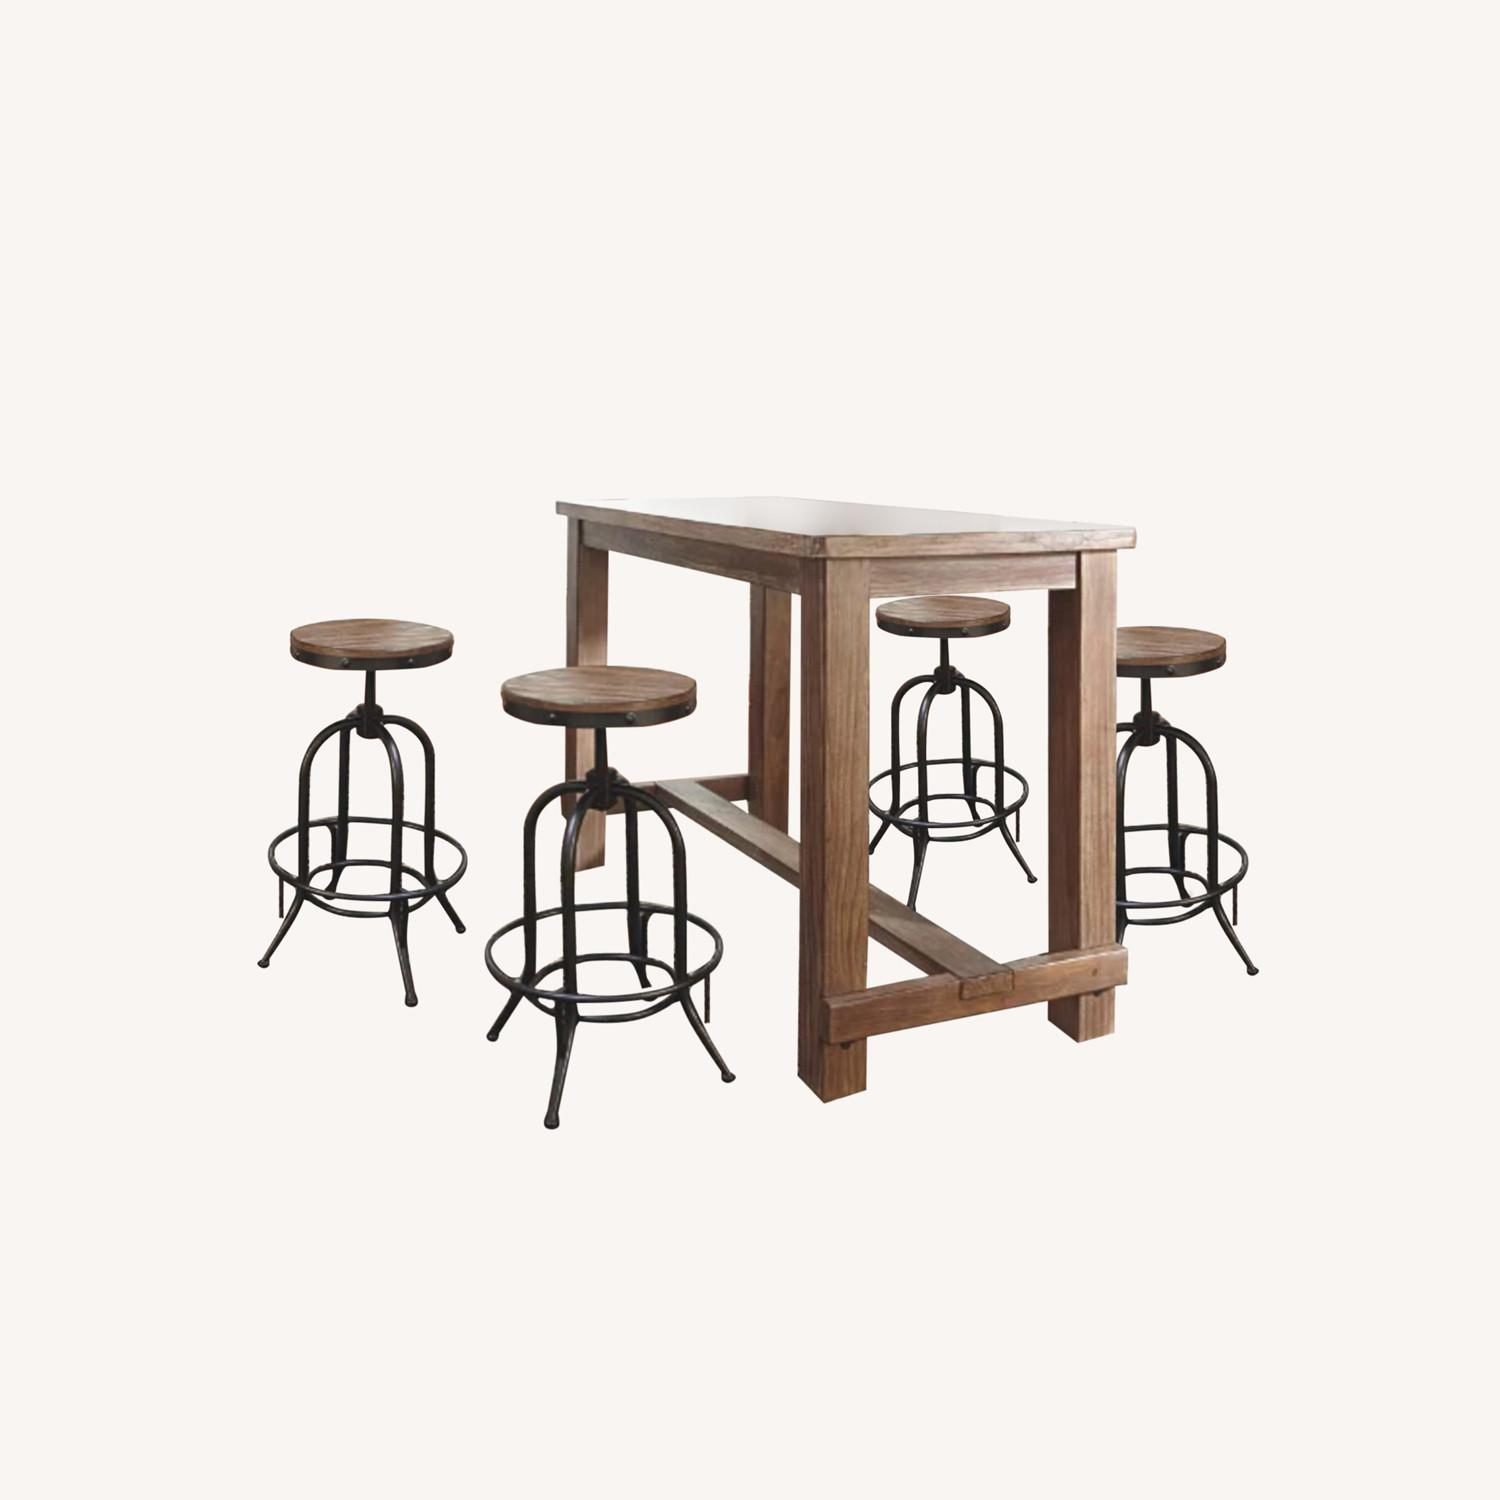 Ashley Furniture Dining Room Bar Table and Bar Stools (4) - image-0